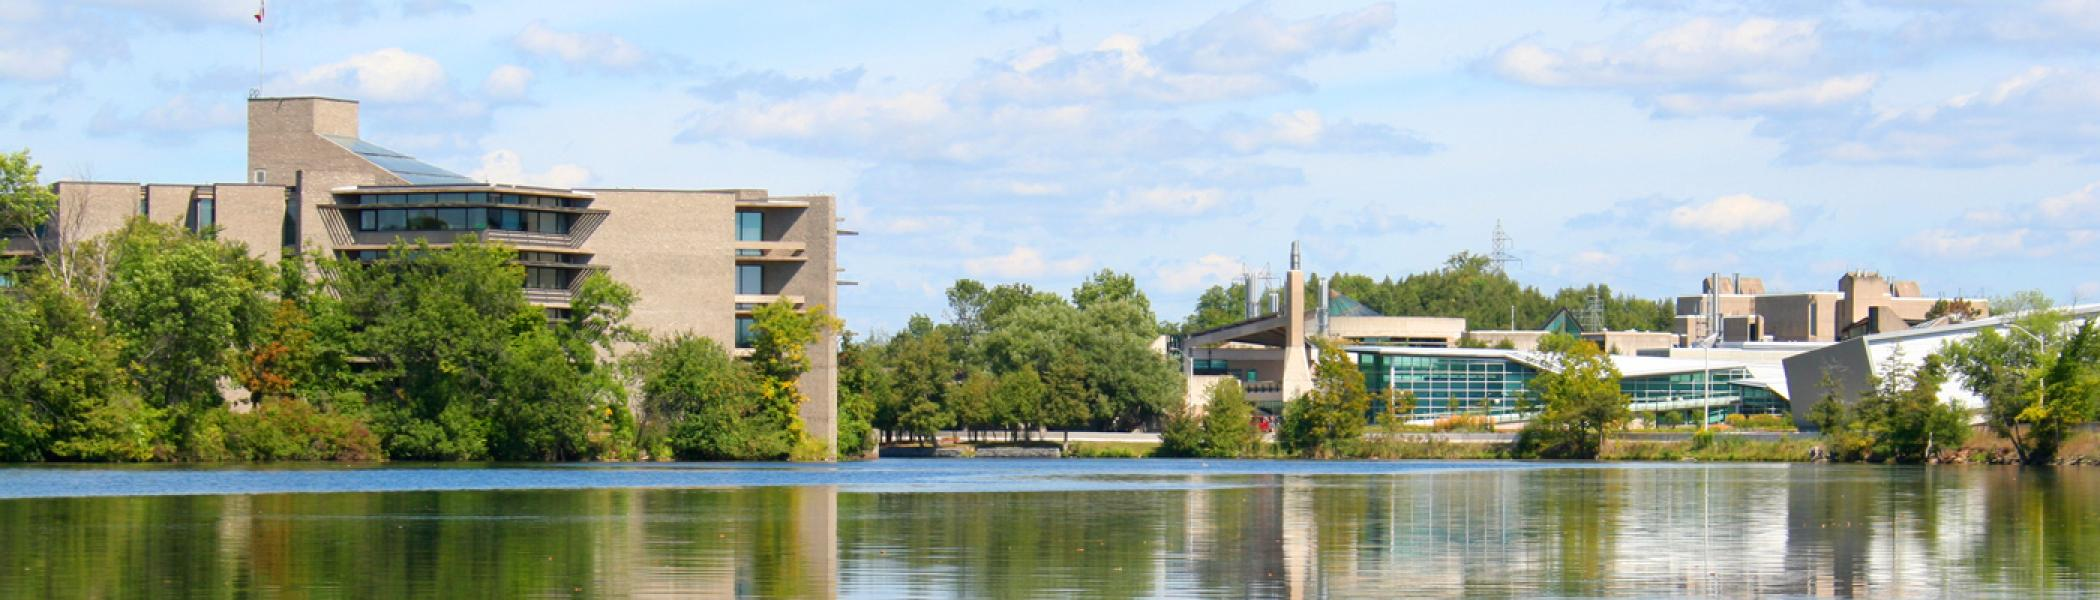 Trent University's Peterborough Campus from down-river highlighting Bata Library and the bridge.